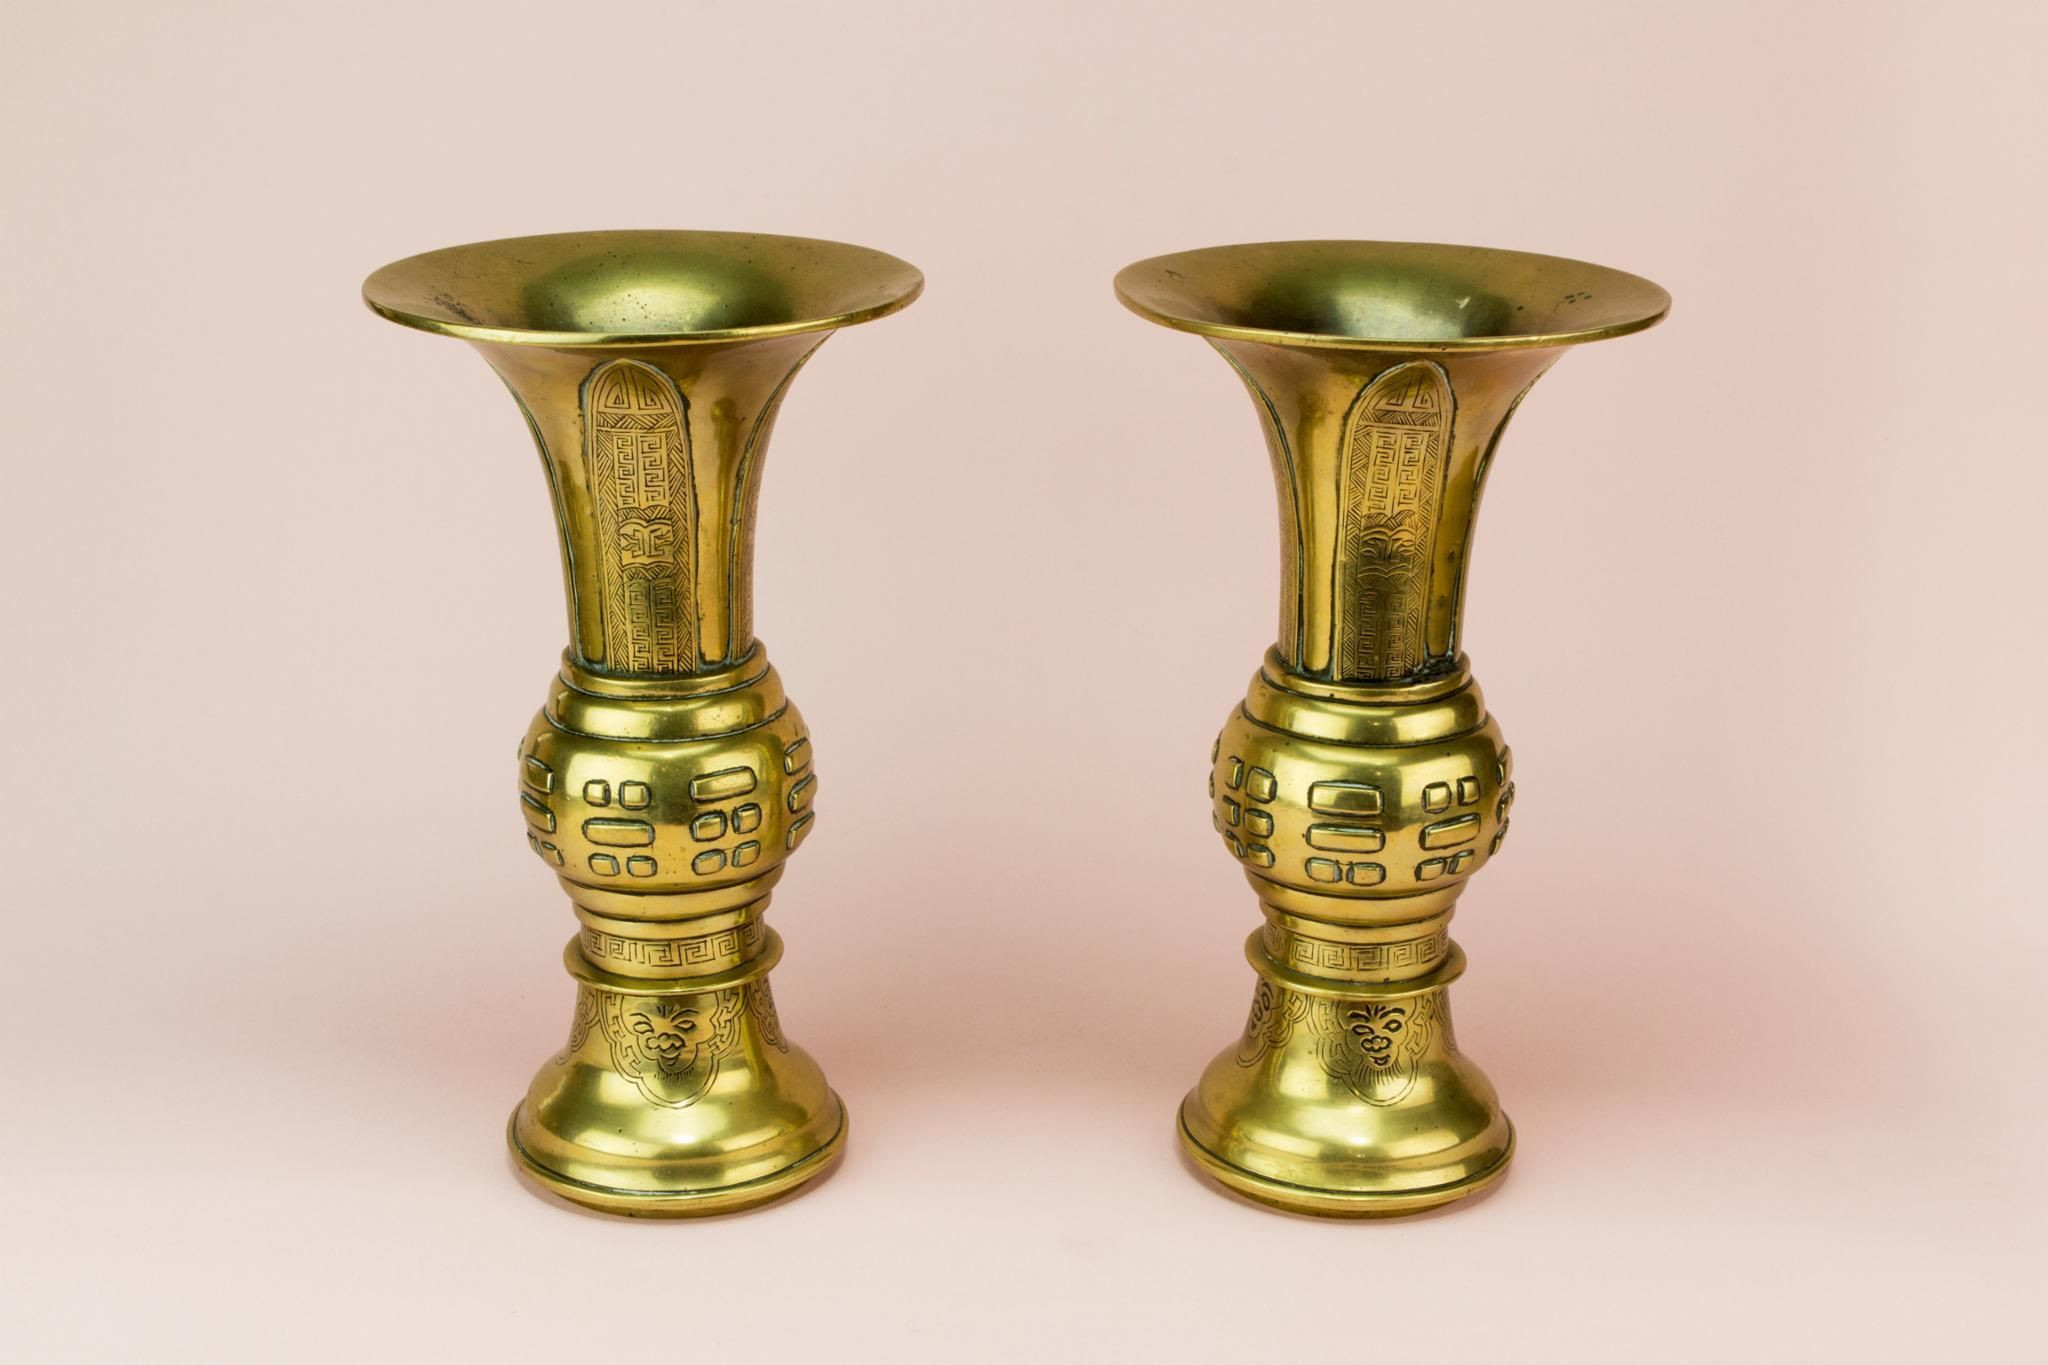 22 Awesome Cyan Design Vases 2021 free download cyan design vases of 44 gold and silver vase the weekly world within 2 gu shaped brass vases chinese 19th century late 19th century